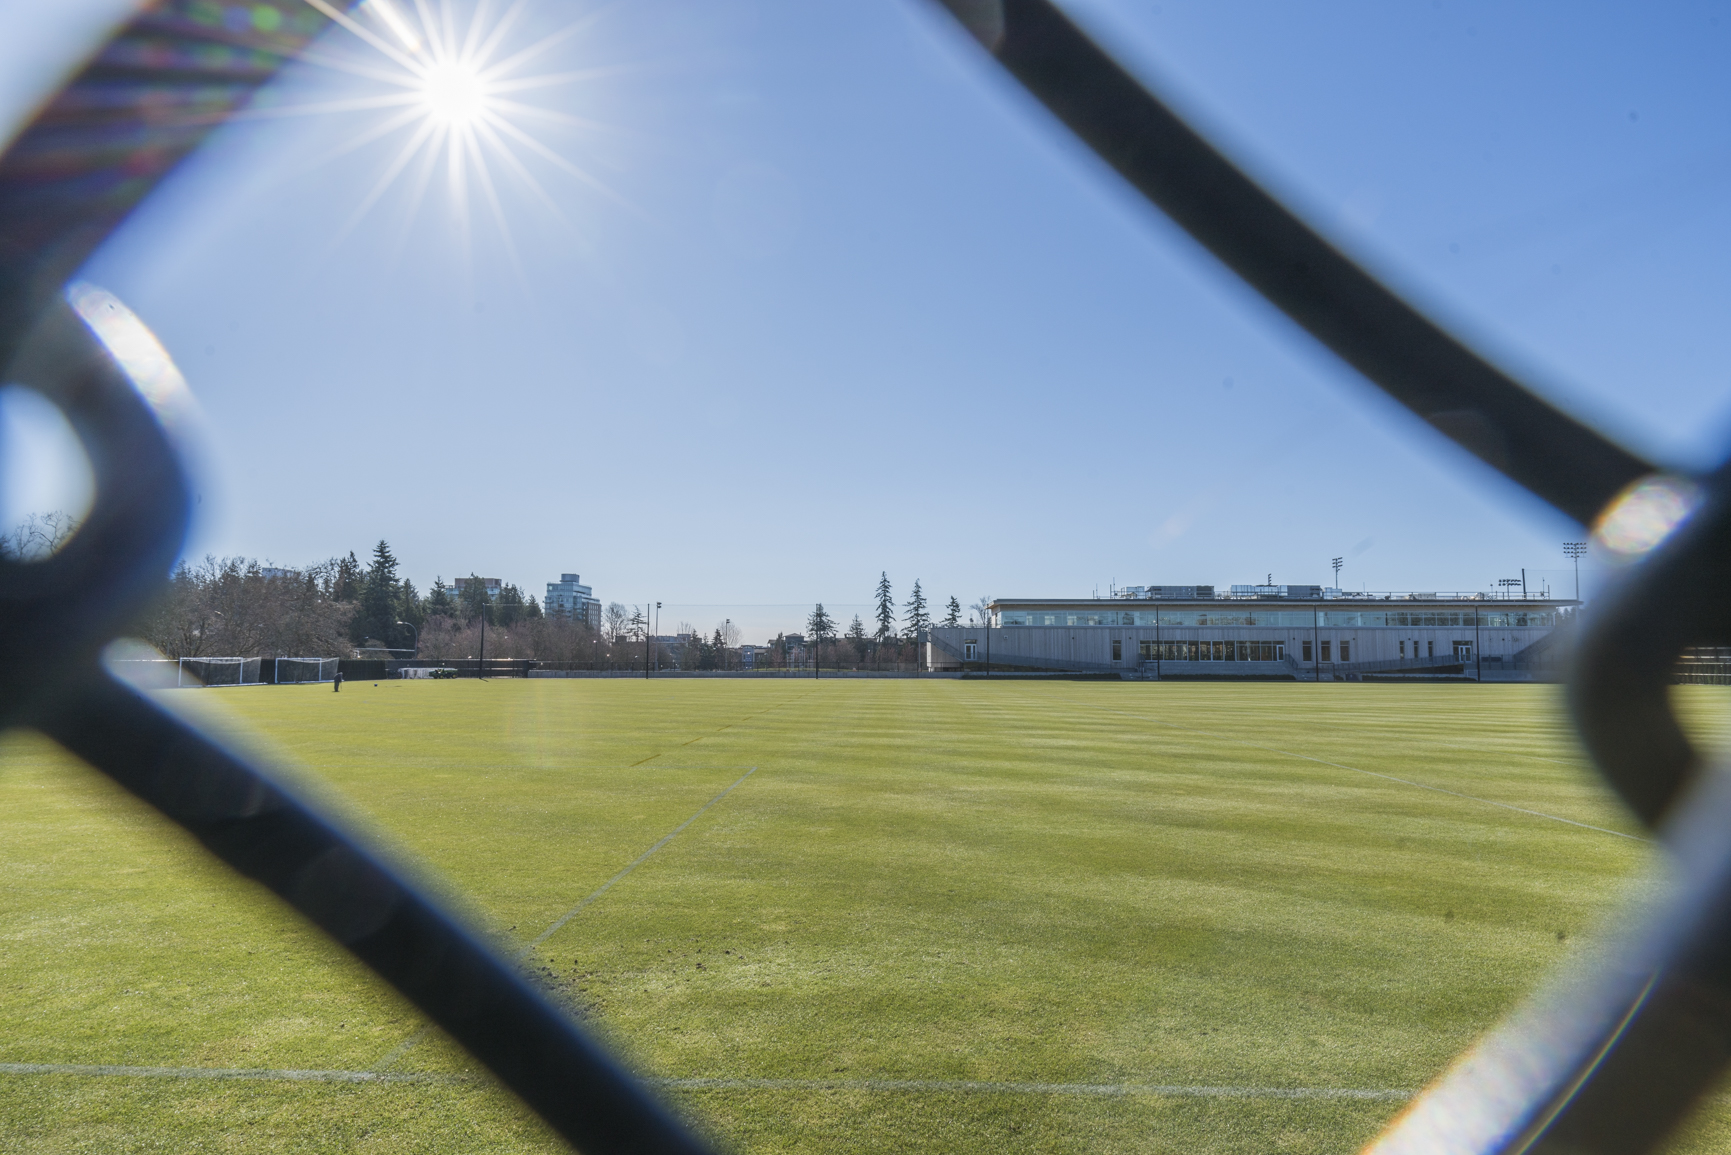 A sports field on a sunny day at UBC Vancouver.